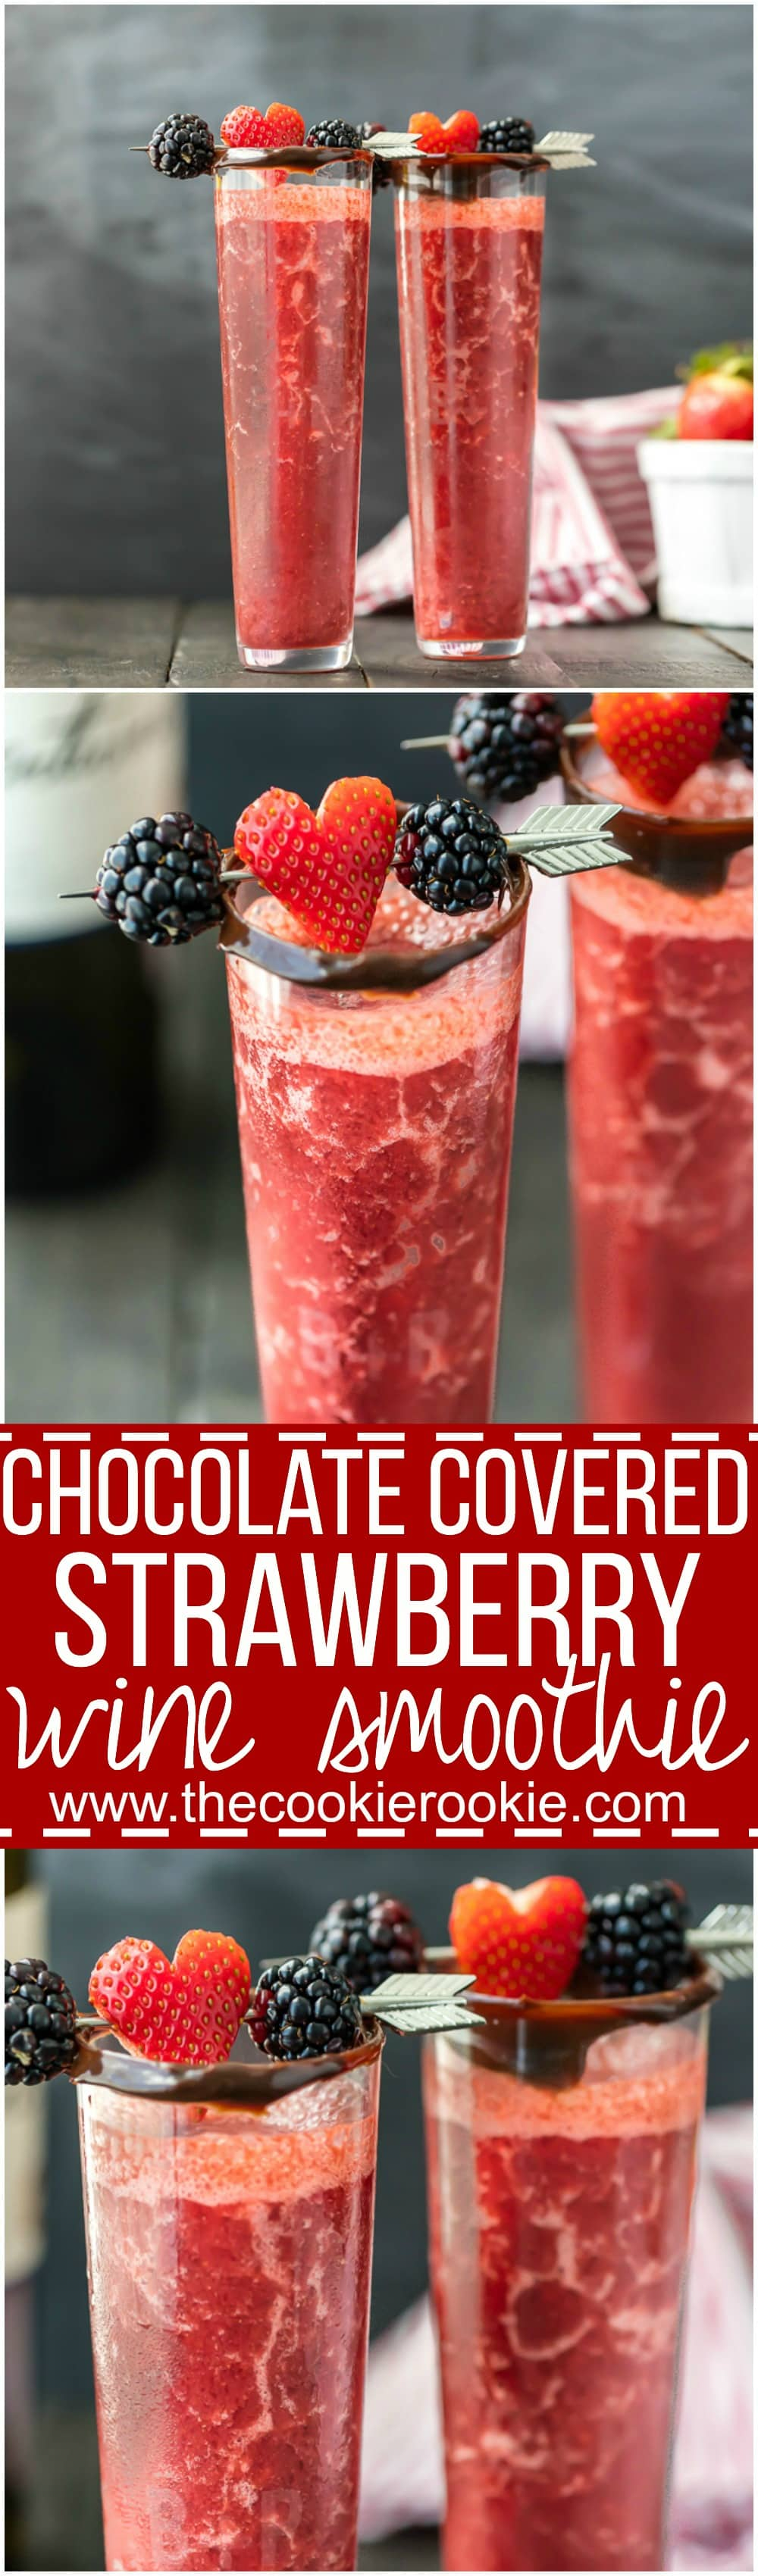 Chocolate Covered Strawberry Wine Smoothie - The Cookie Rookie